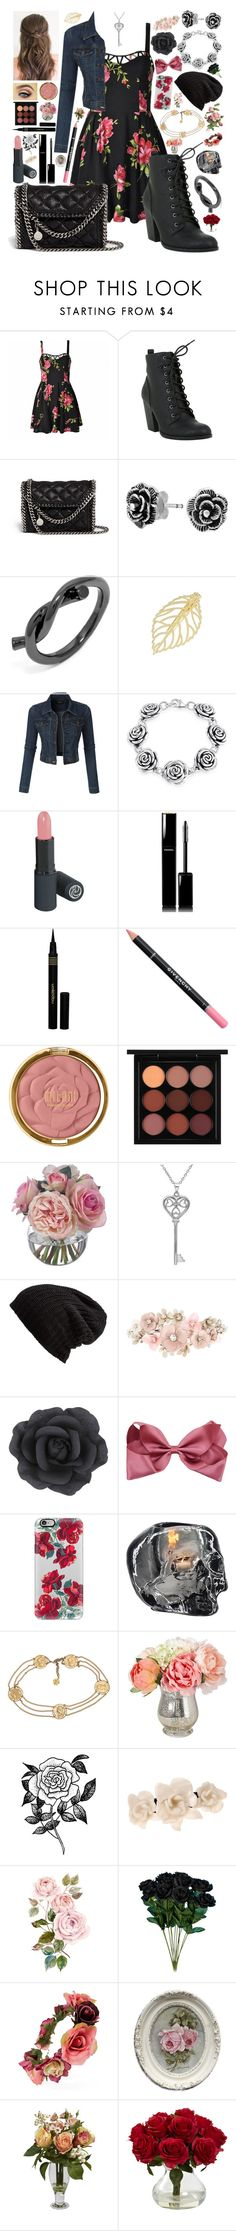 """Iris: Modern Day Juliet"" by aspiretoinspire22 ❤ liked on Polyvore featuring Ally Fashion, STELLA McCARTNEY, Bling Jewelry, BaubleBar, LE3NO, Chanel, Napoleon Perdis, Givenchy, Milani and MAC Cosmetics"